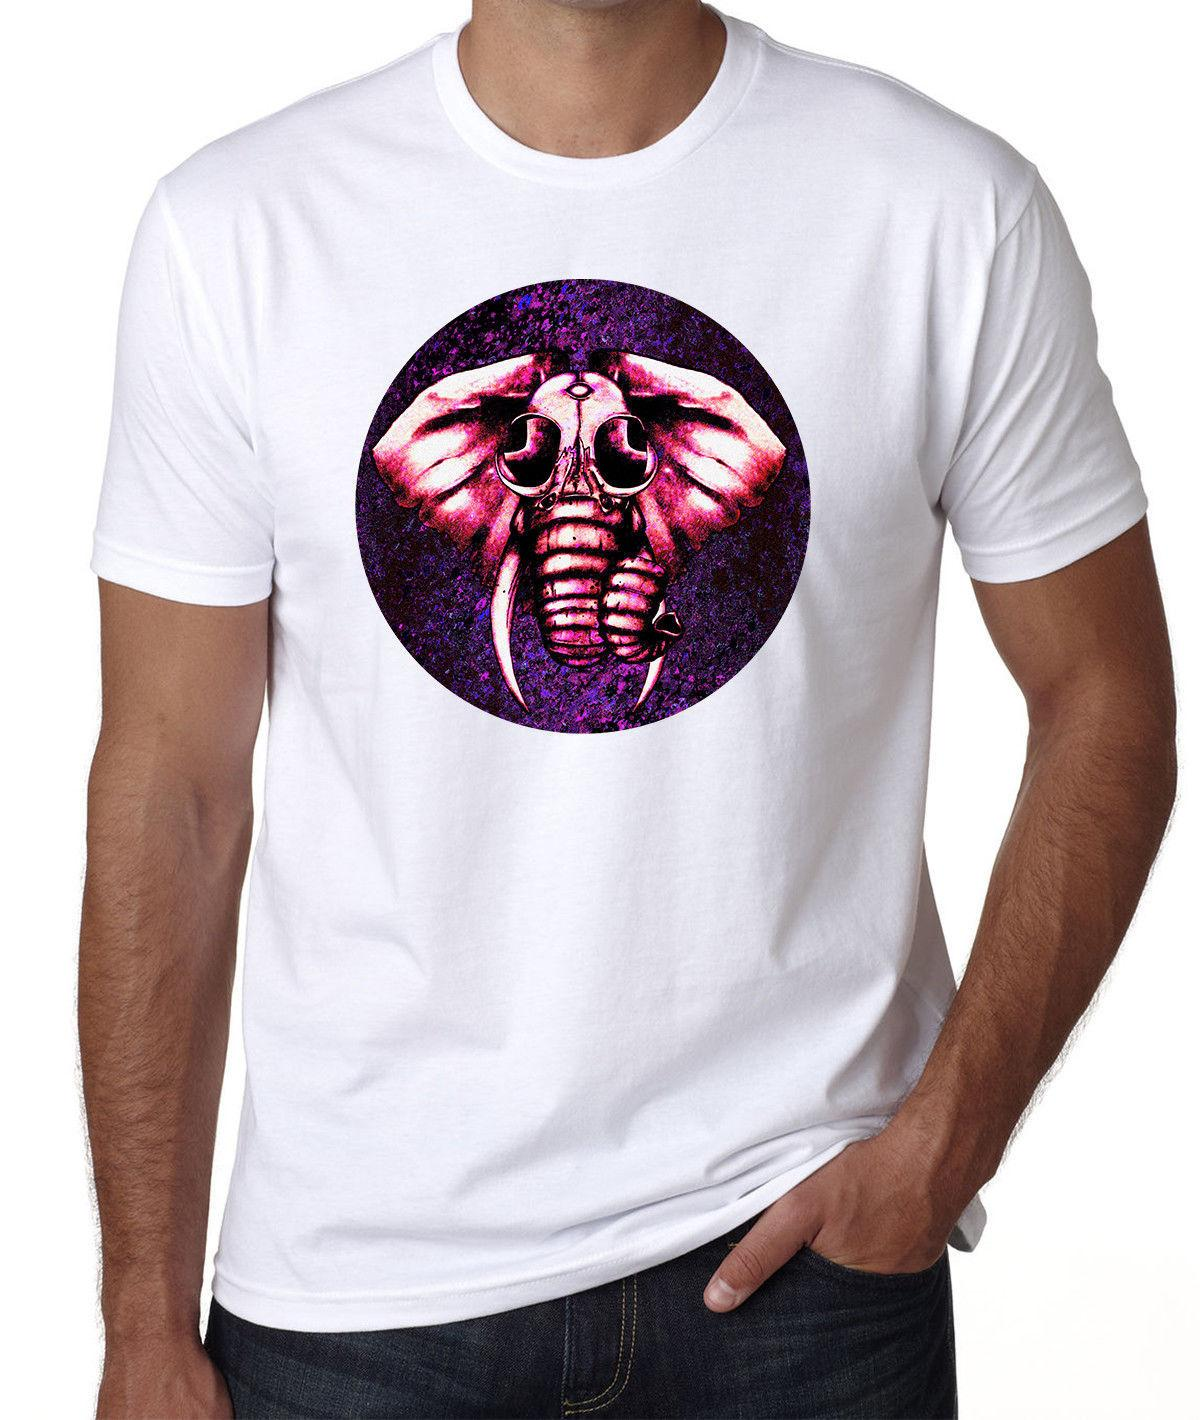 53da5878bb62c1 Cosmic Hallucination Glitch Elephant Graphic Men S Printed White Cotton T  Shirt Cotton Fashion Men T Shirt Colour Funny Printed T Shirt Site Online  Tees ...